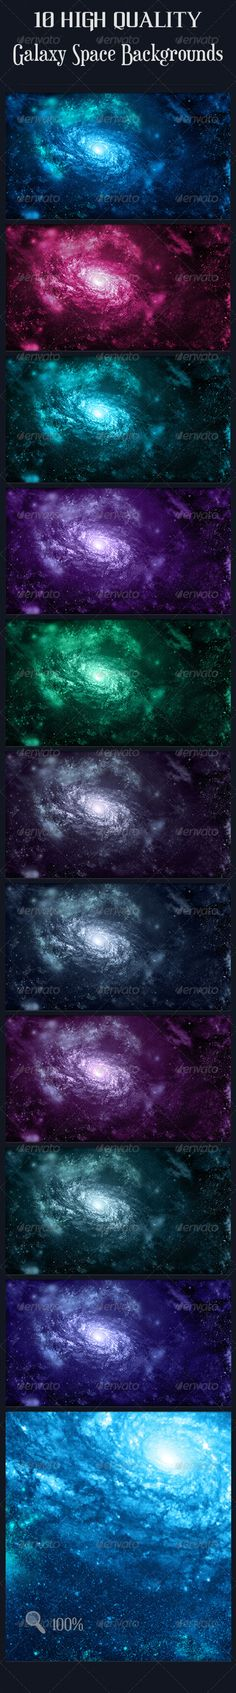 Realistic Graphic DOWNLOAD (.ai, .psd) :: http://hardcast.de/pinterest-itmid-1007539703i.html ... 10 High Quality Galaxy Space Backgrounds ...  2300x1350, blue, galaxy, hd, high quality, premium, sci-fi, space, space backgrounds  ... Realistic Photo Graphic Print Obejct Business Web Elements Illustration Design Templates ... DOWNLOAD :: http://hardcast.de/pinterest-itmid-1007539703i.html